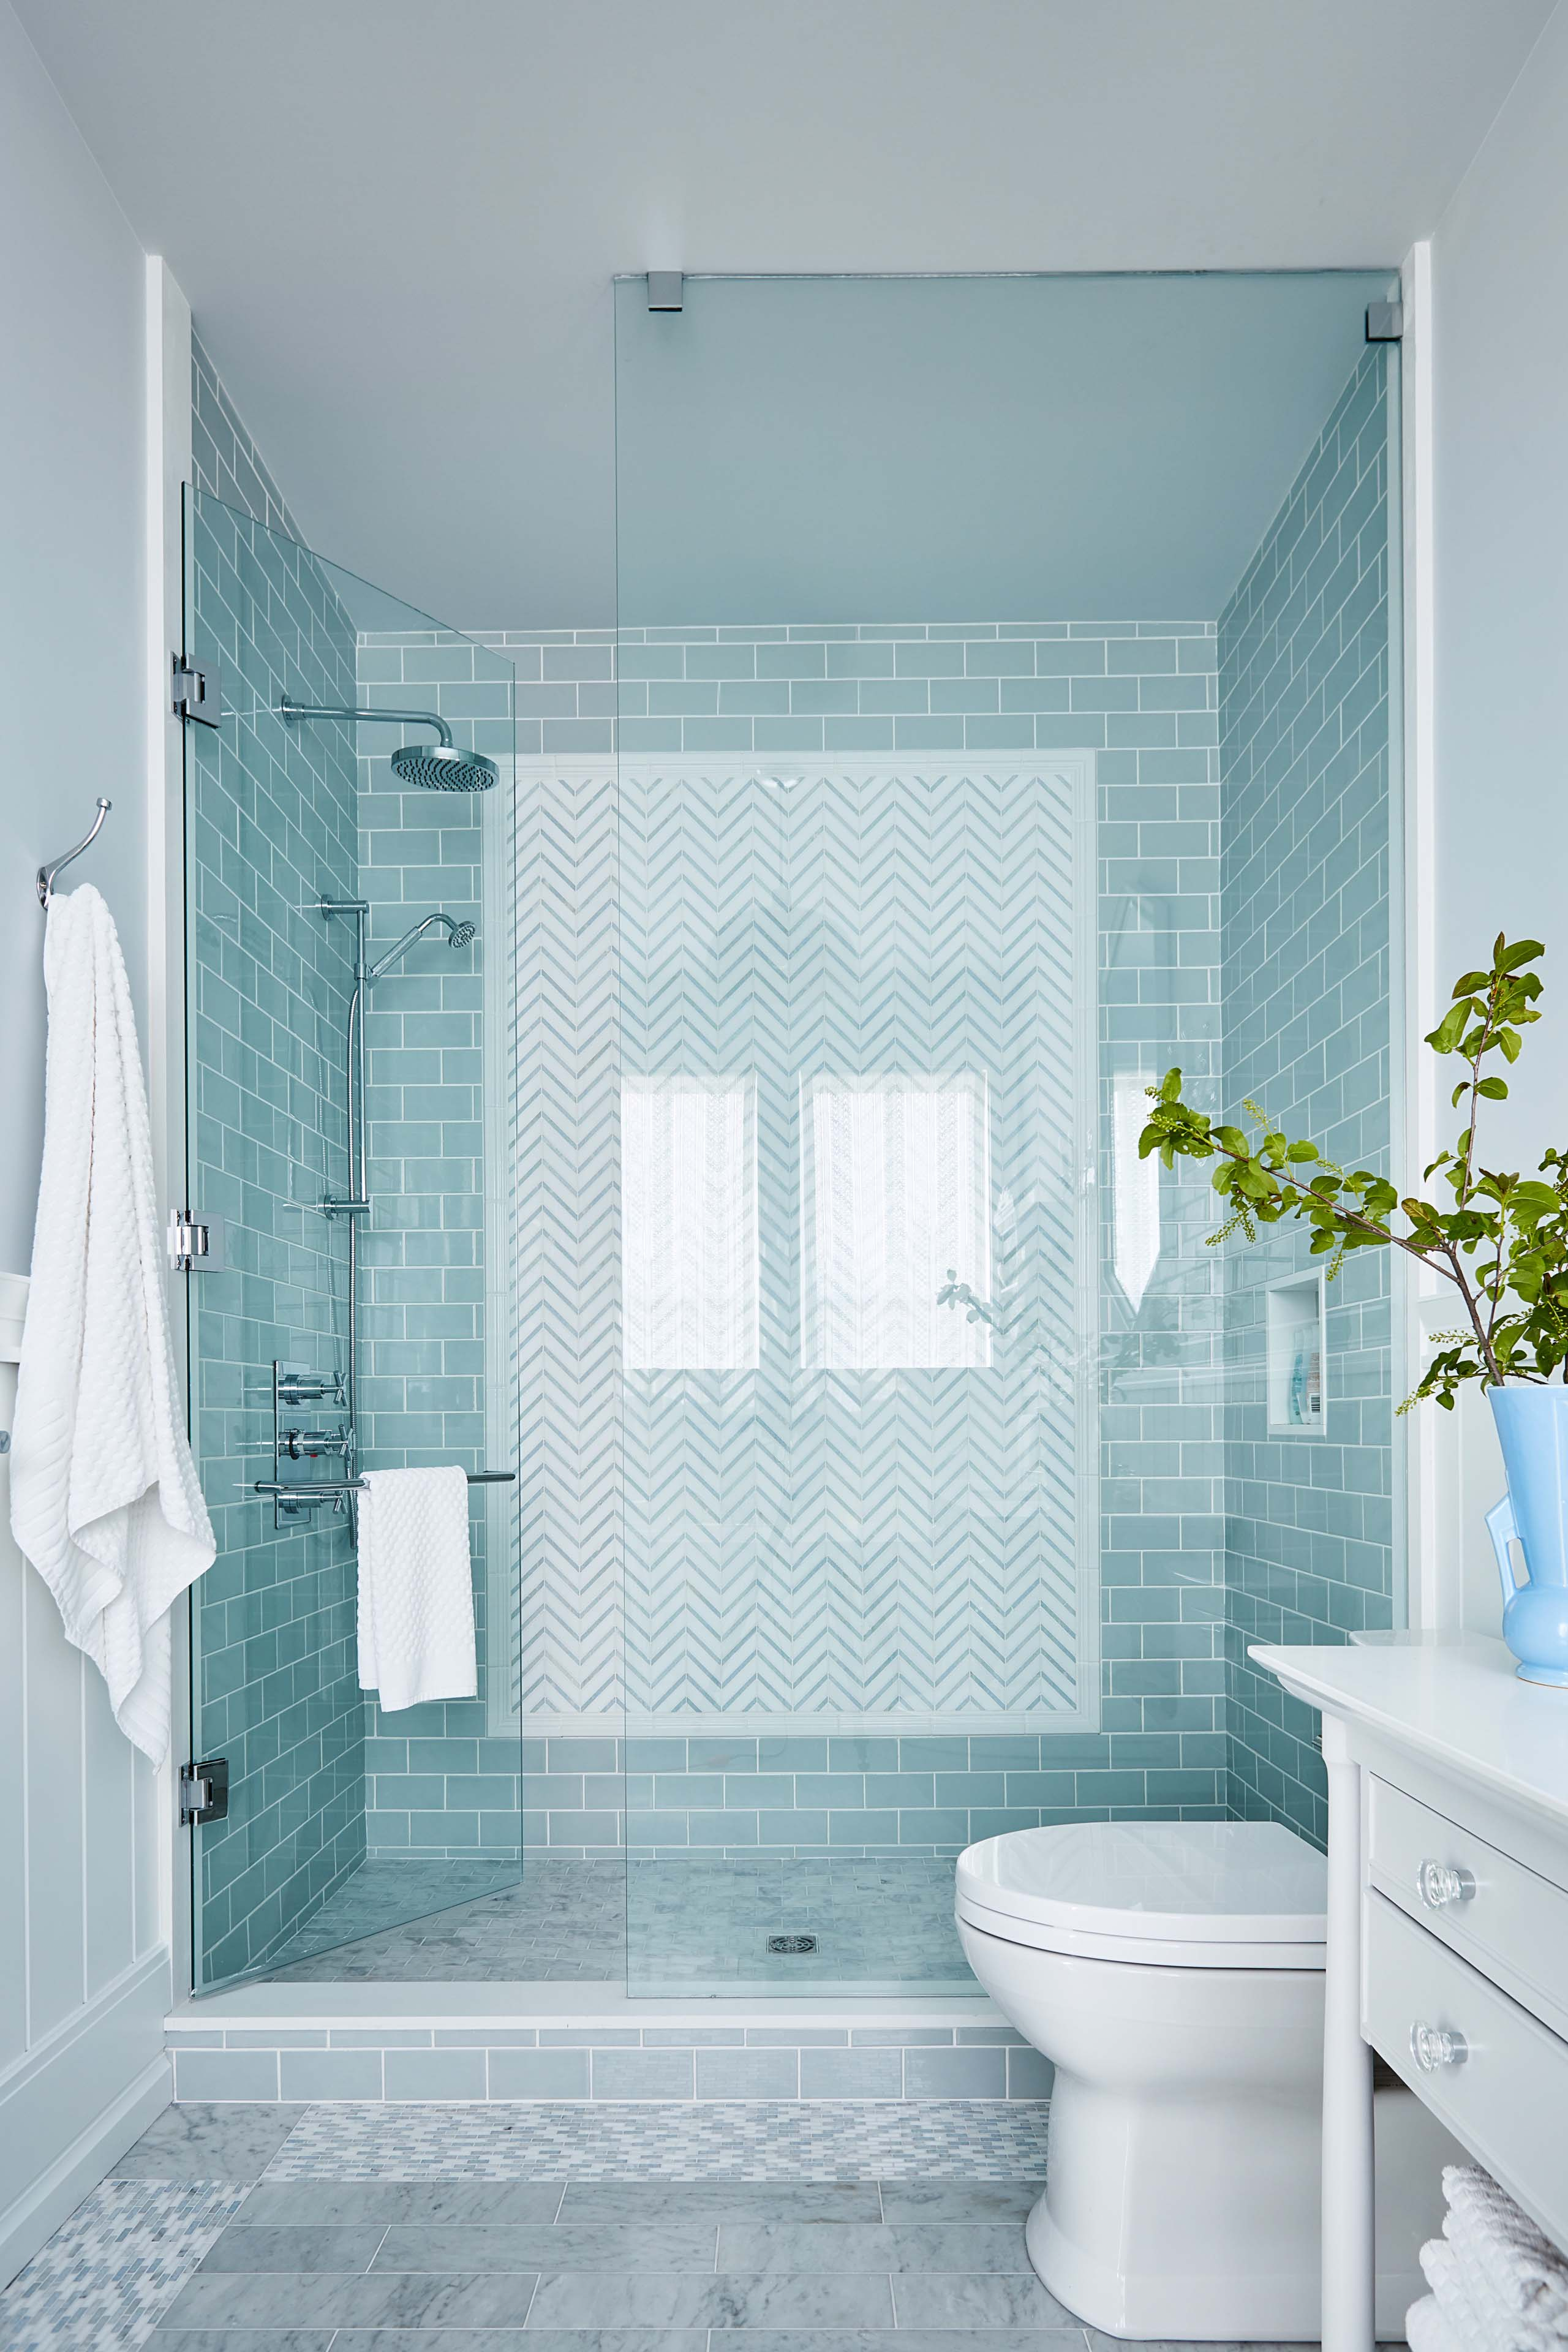 Aqua subway tiles in shower by #SarahRichardson with #glasswall and #classicdesign